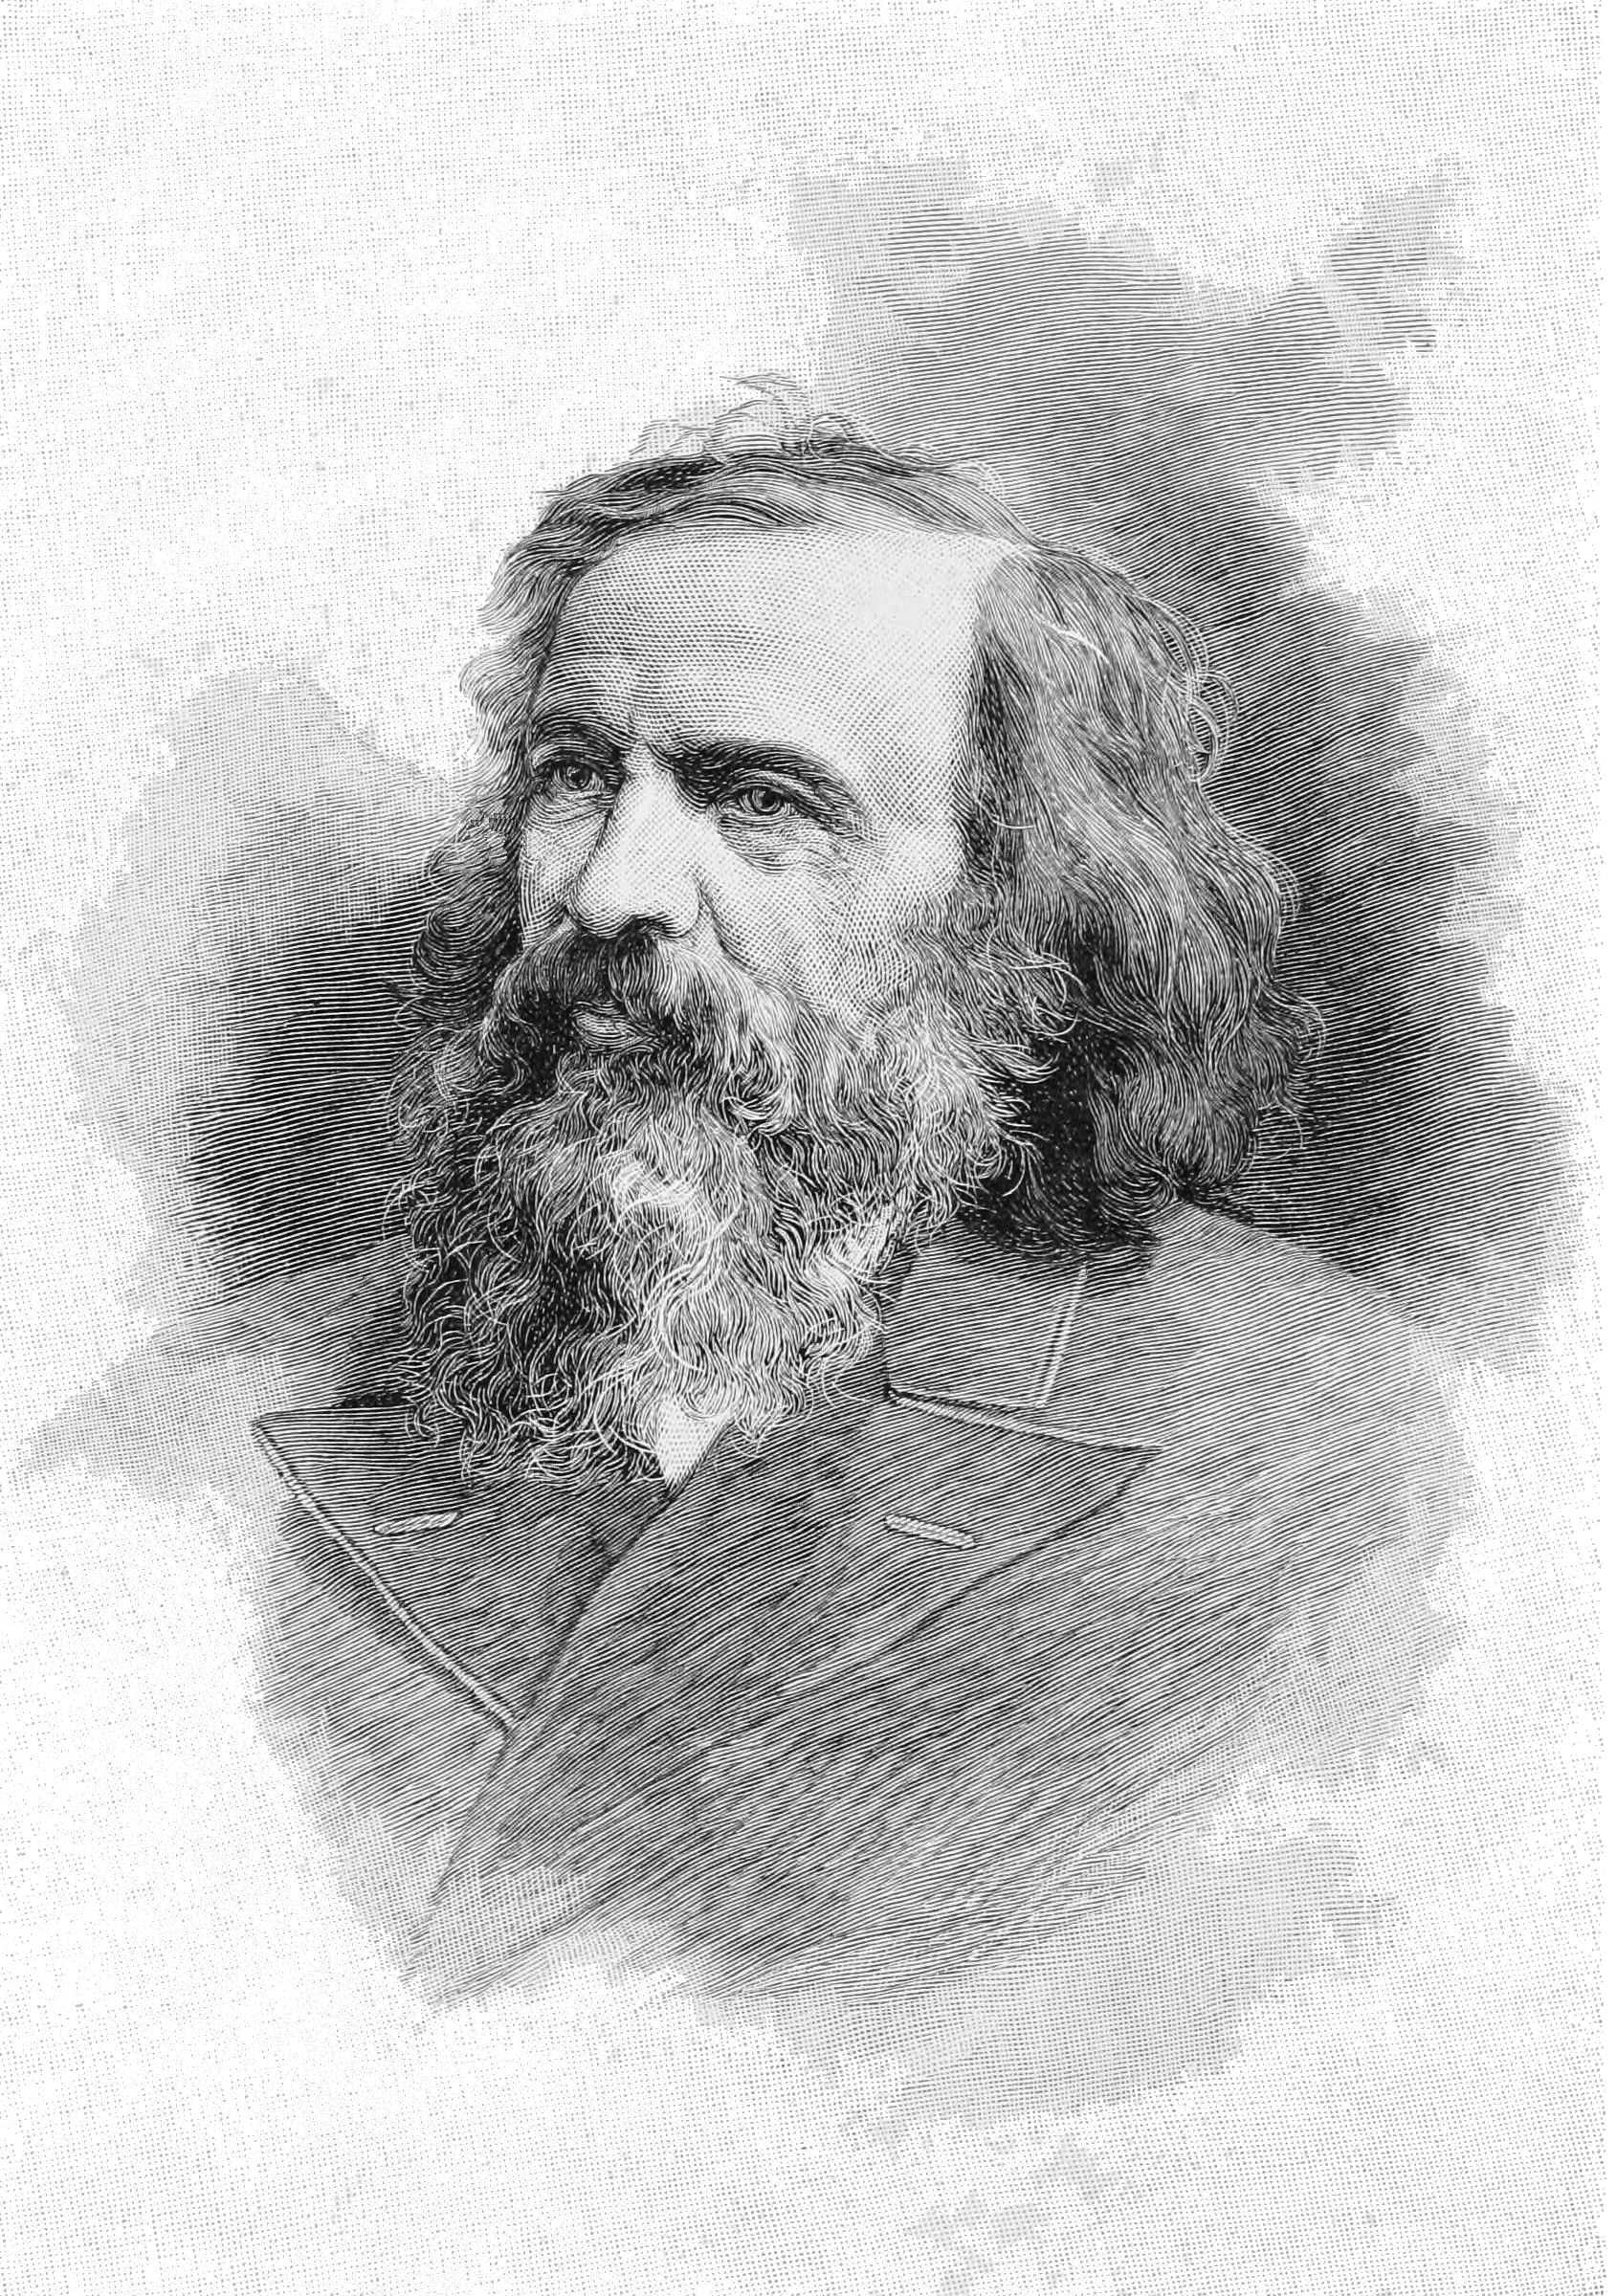 Mystic science 6 times dreams and mysticism changed the course of in 1869 dmitri mendeleev developed and published the periodic table gamestrikefo Choice Image